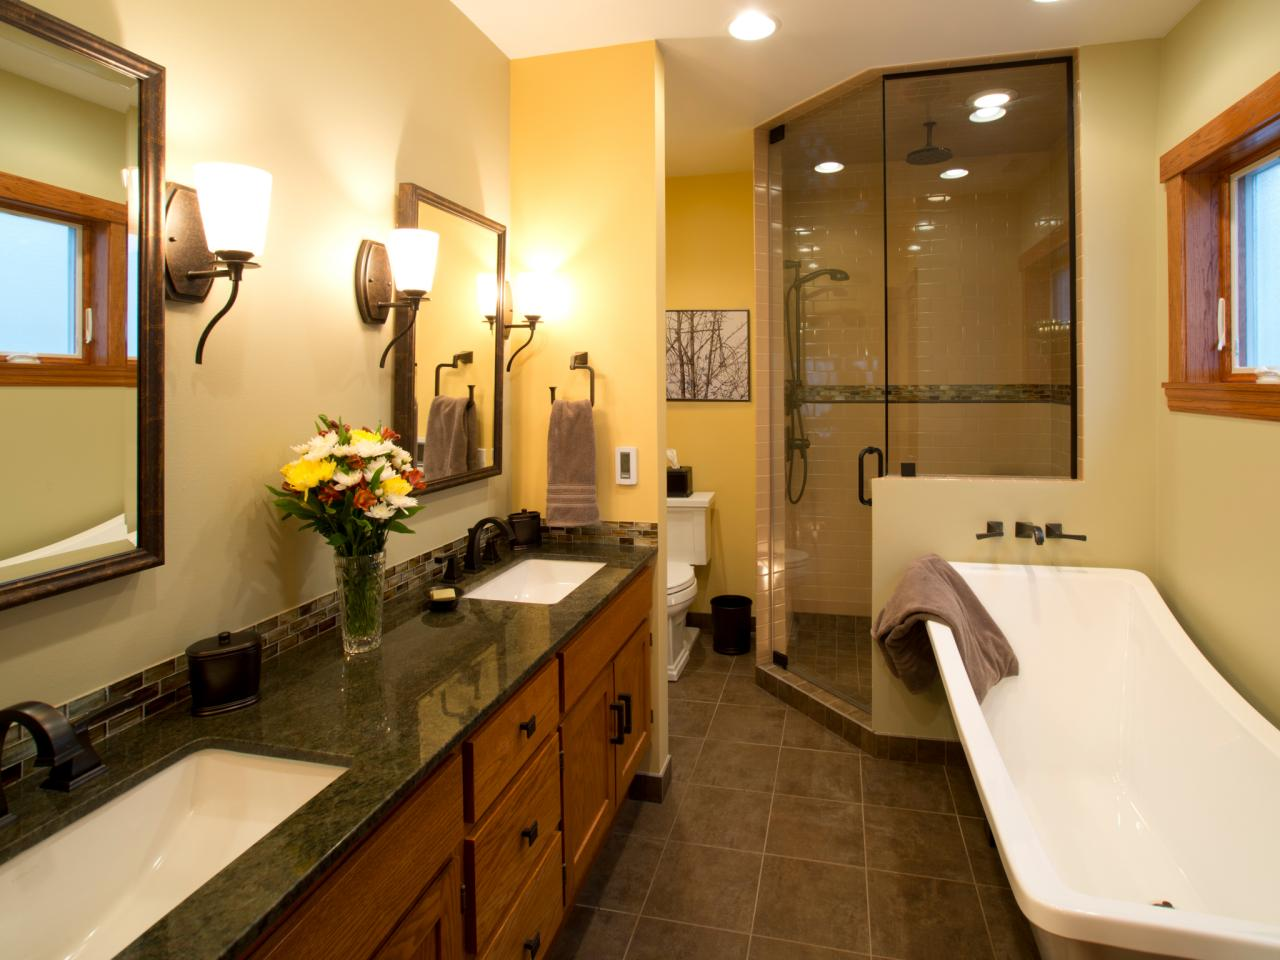 Bathroom Design Ideas And Tips: Bathtub Styles & Options: Pictures, Ideas & Tips From HGTV